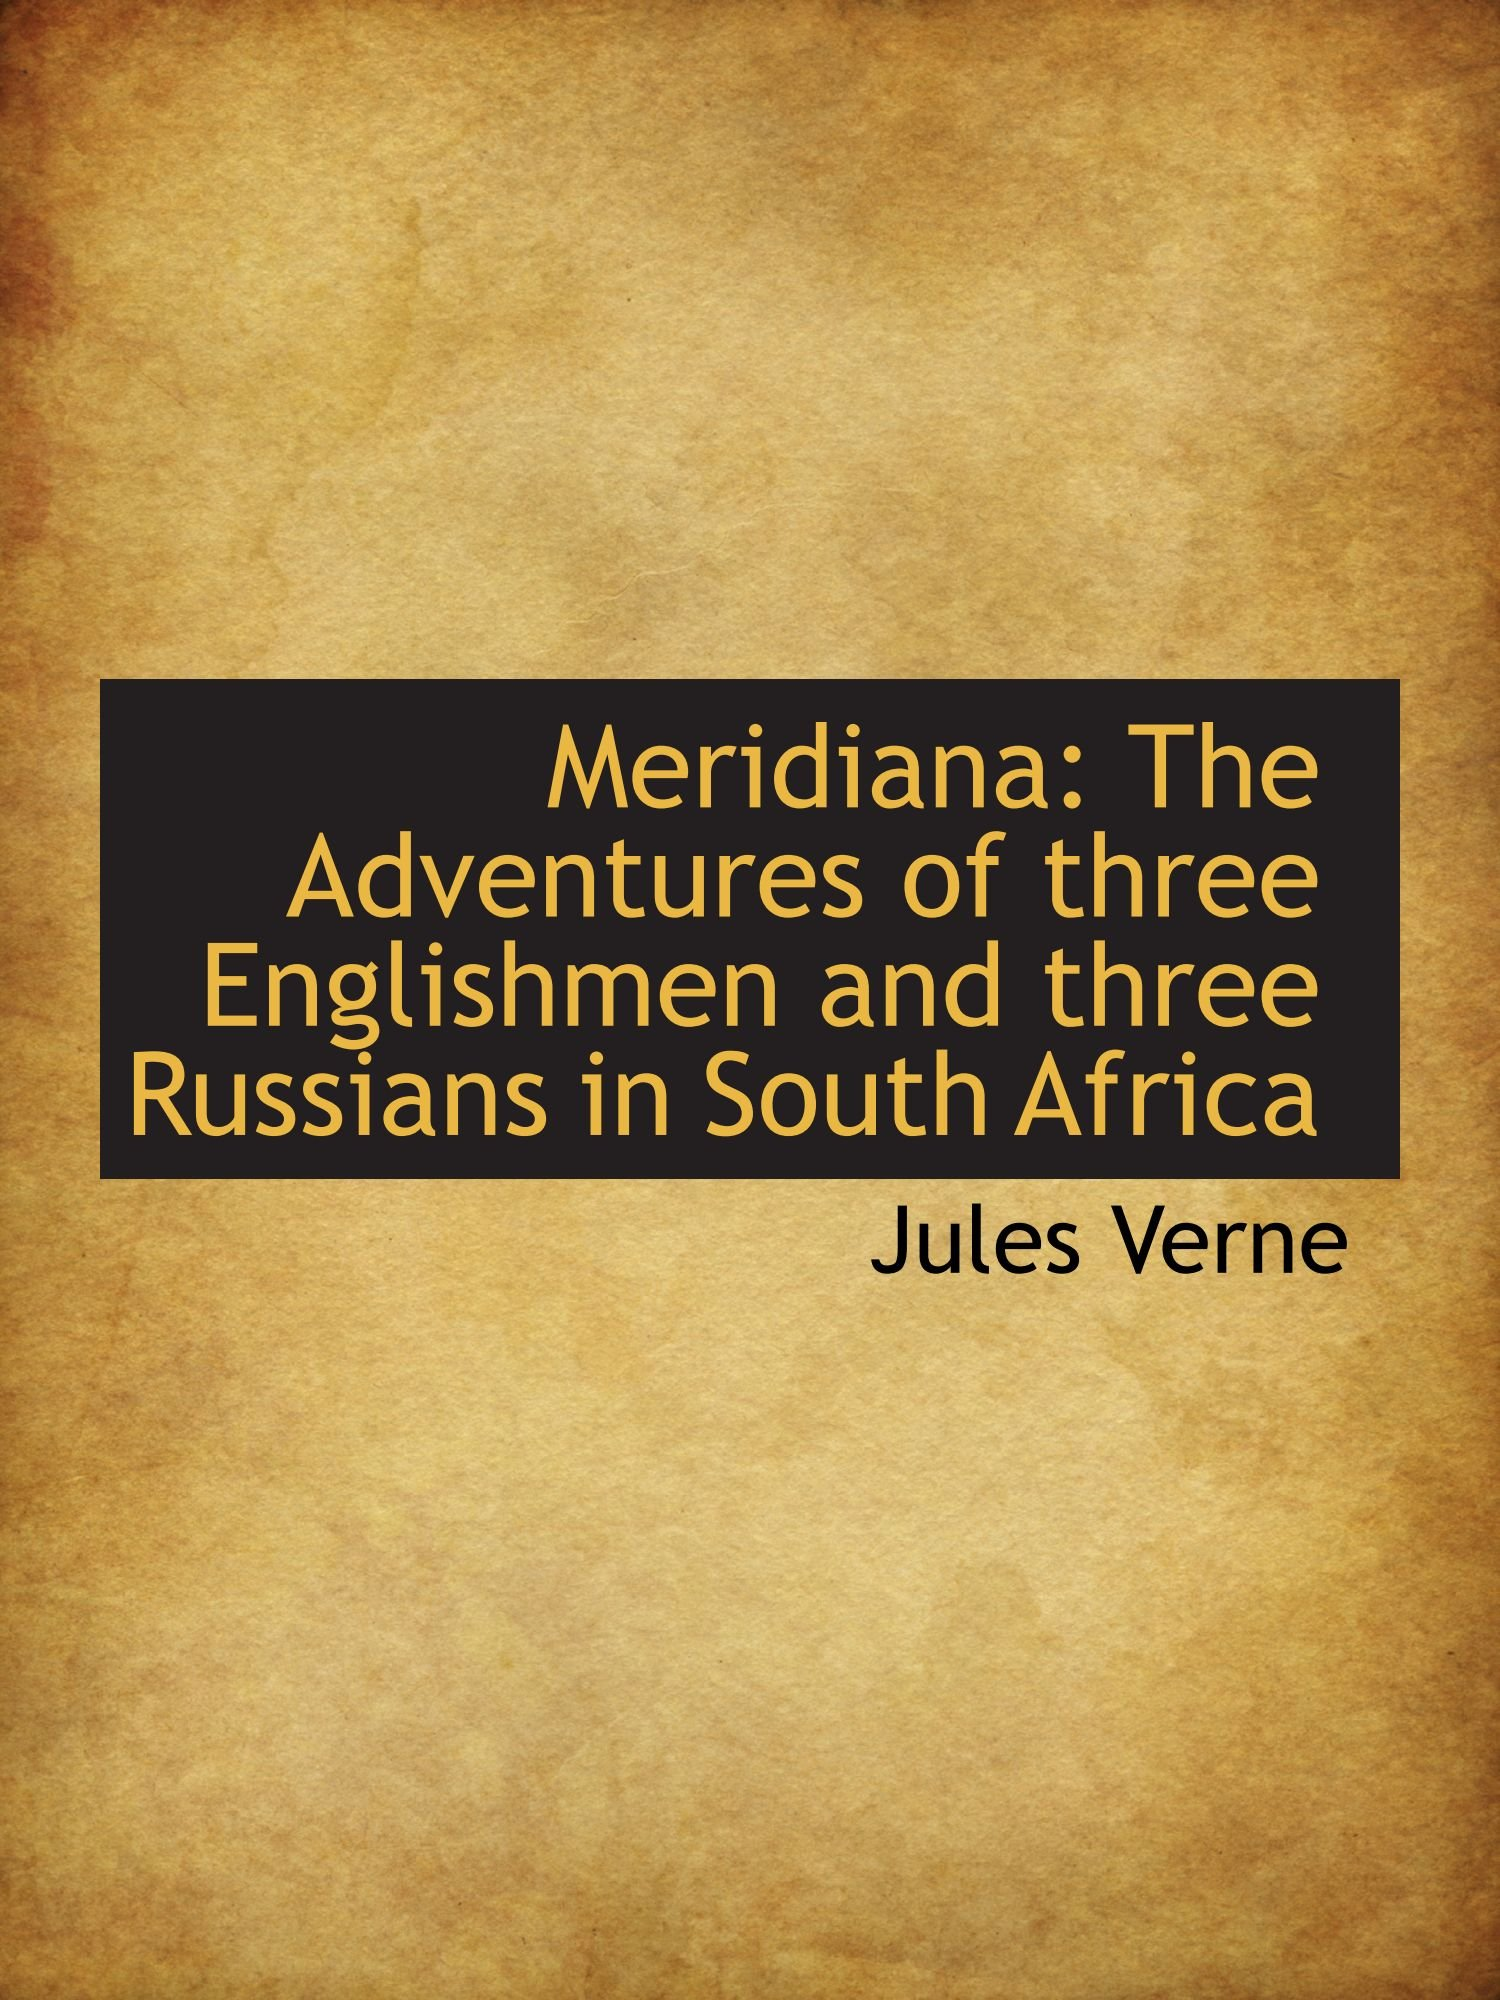 Read Online Meridiana: The Adventures of three Englishmen and three Russians in South Africa pdf epub